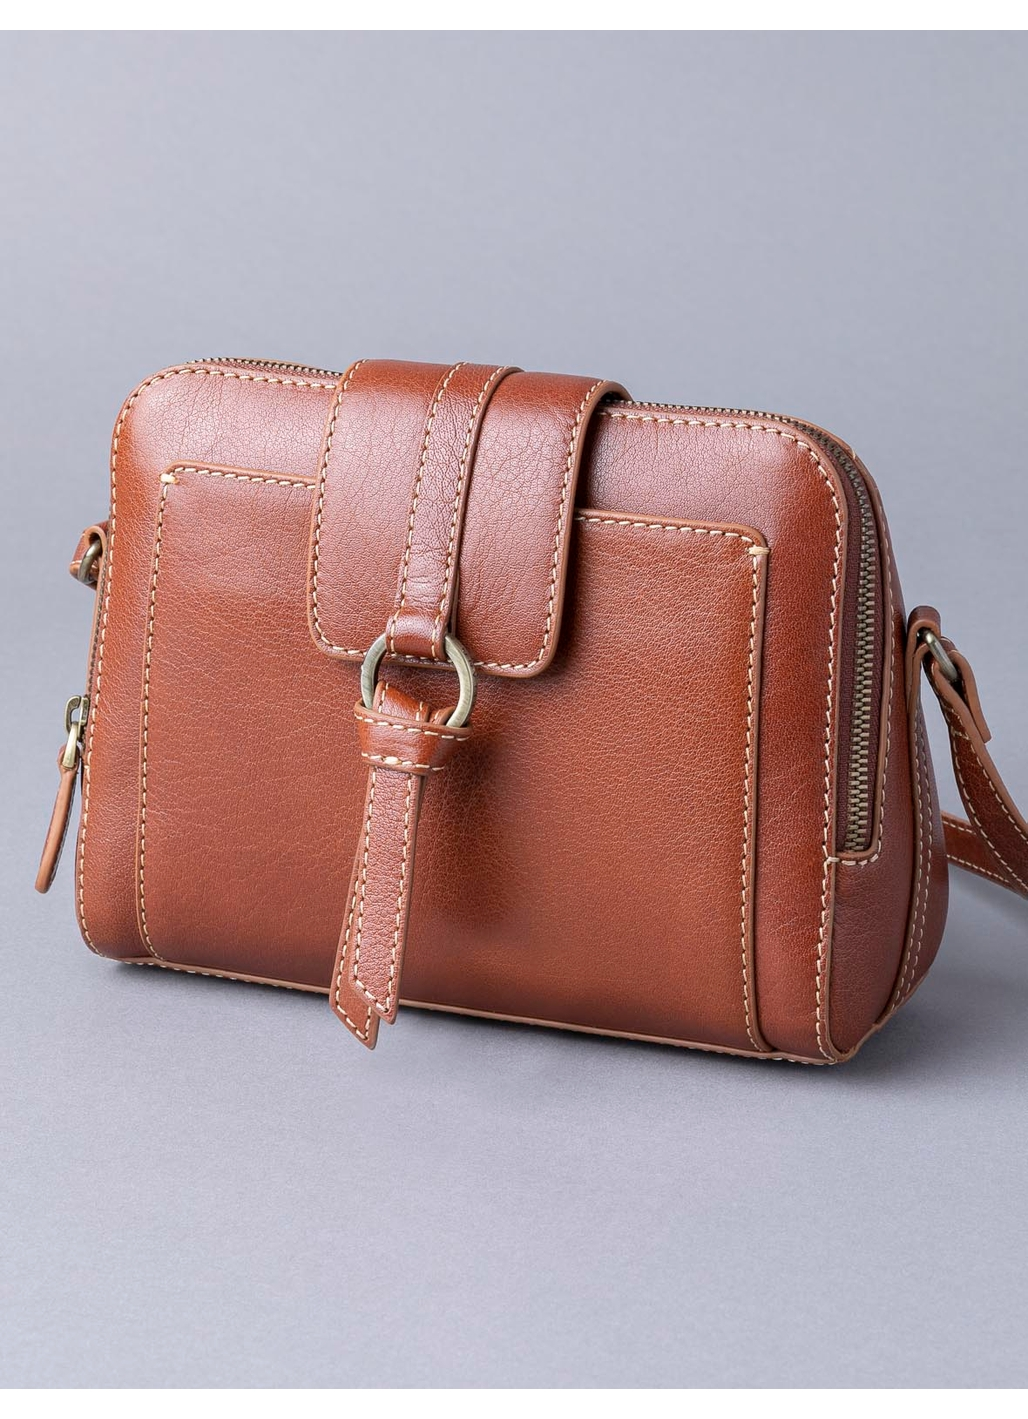 Birthwaite Leather Cross Body Bag in Cognac